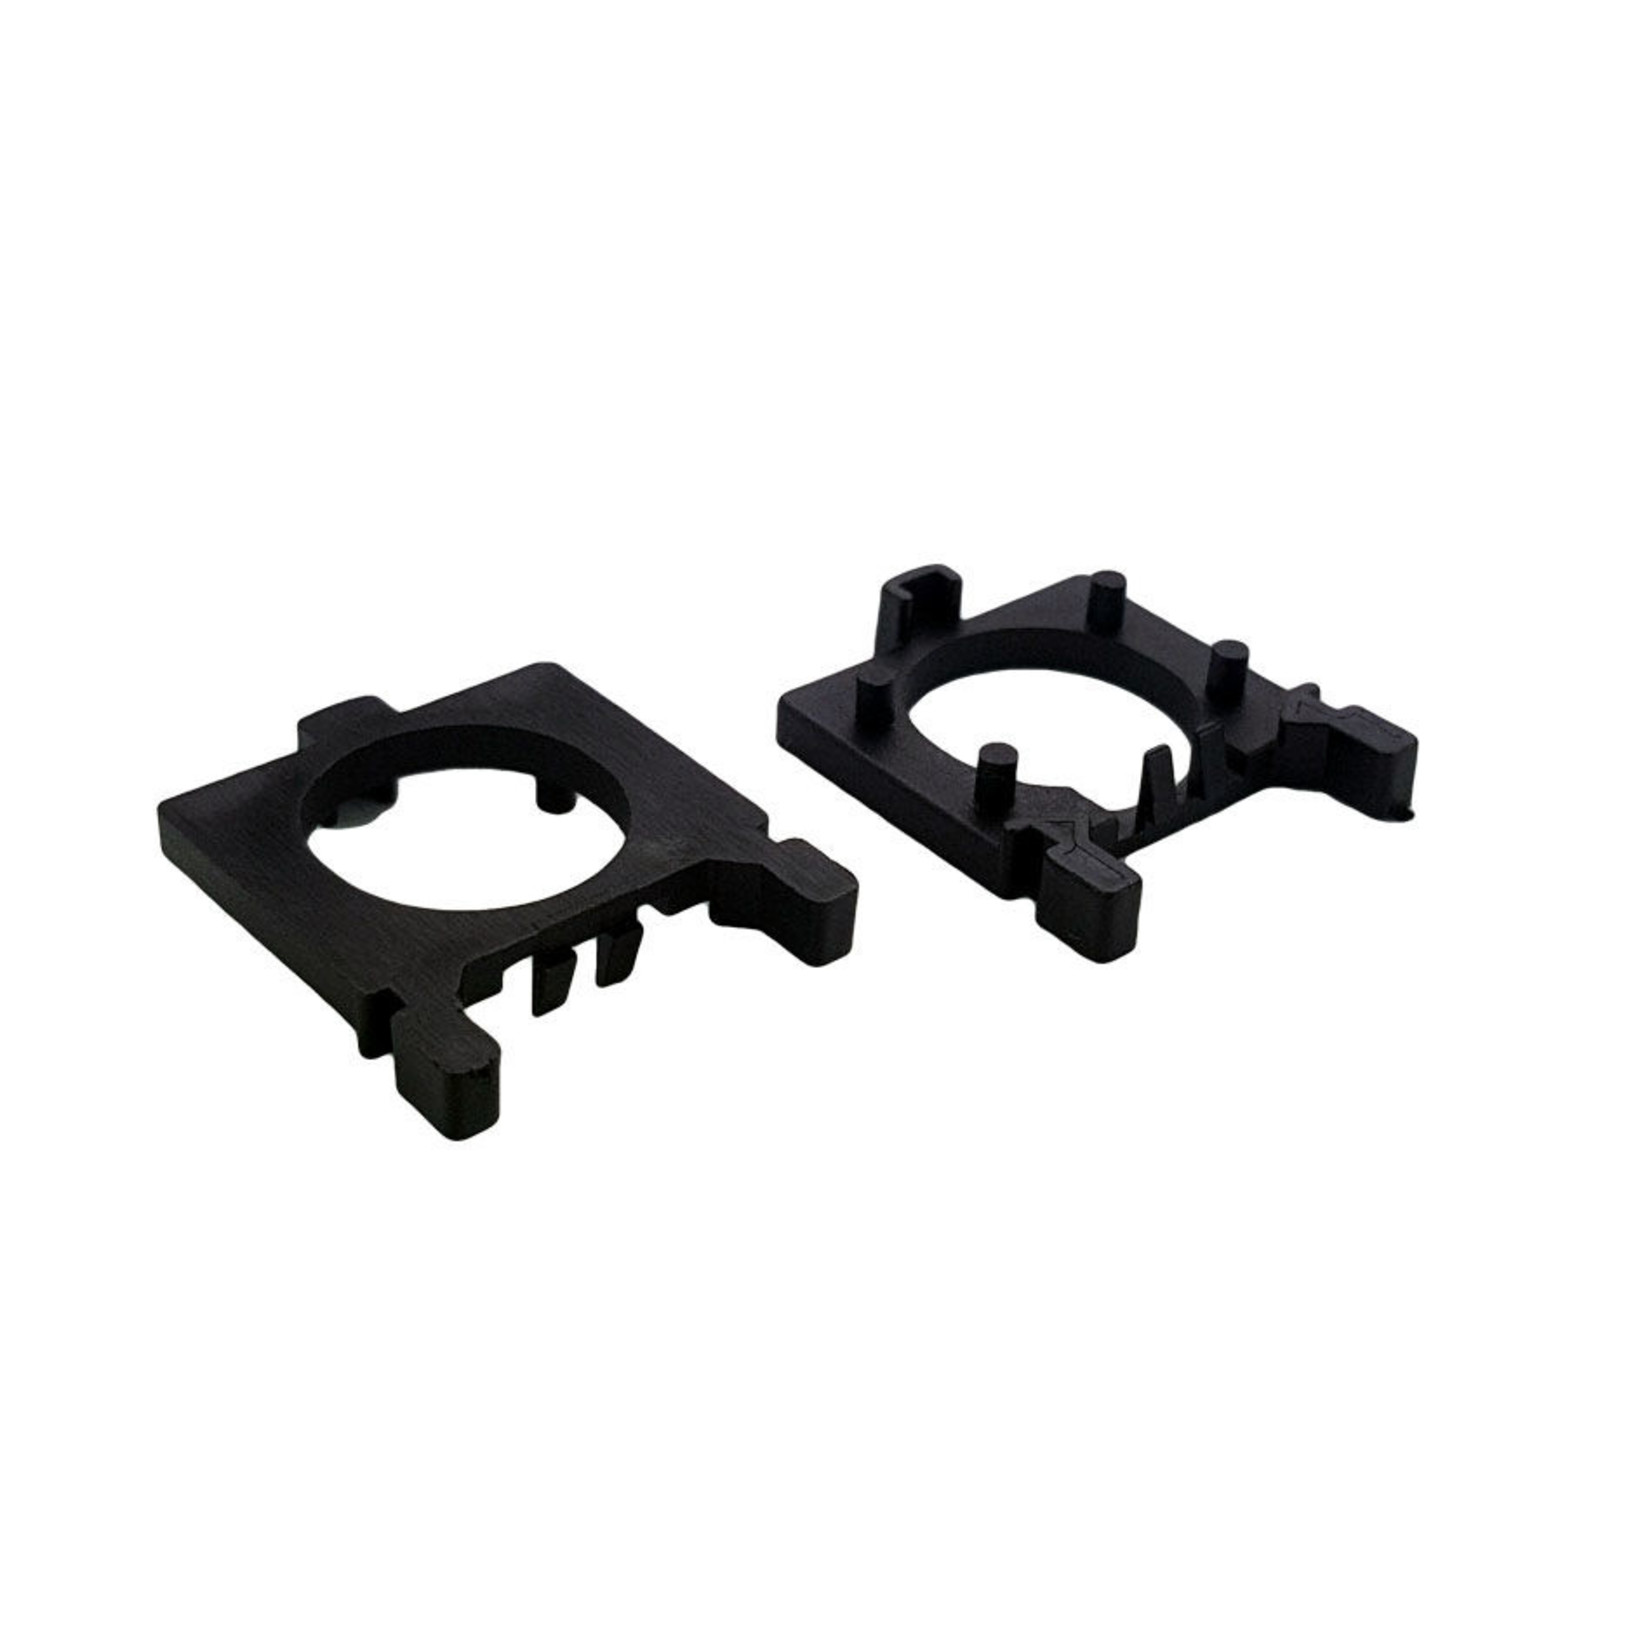 XEOD Ford Focus / Fiesta adapter